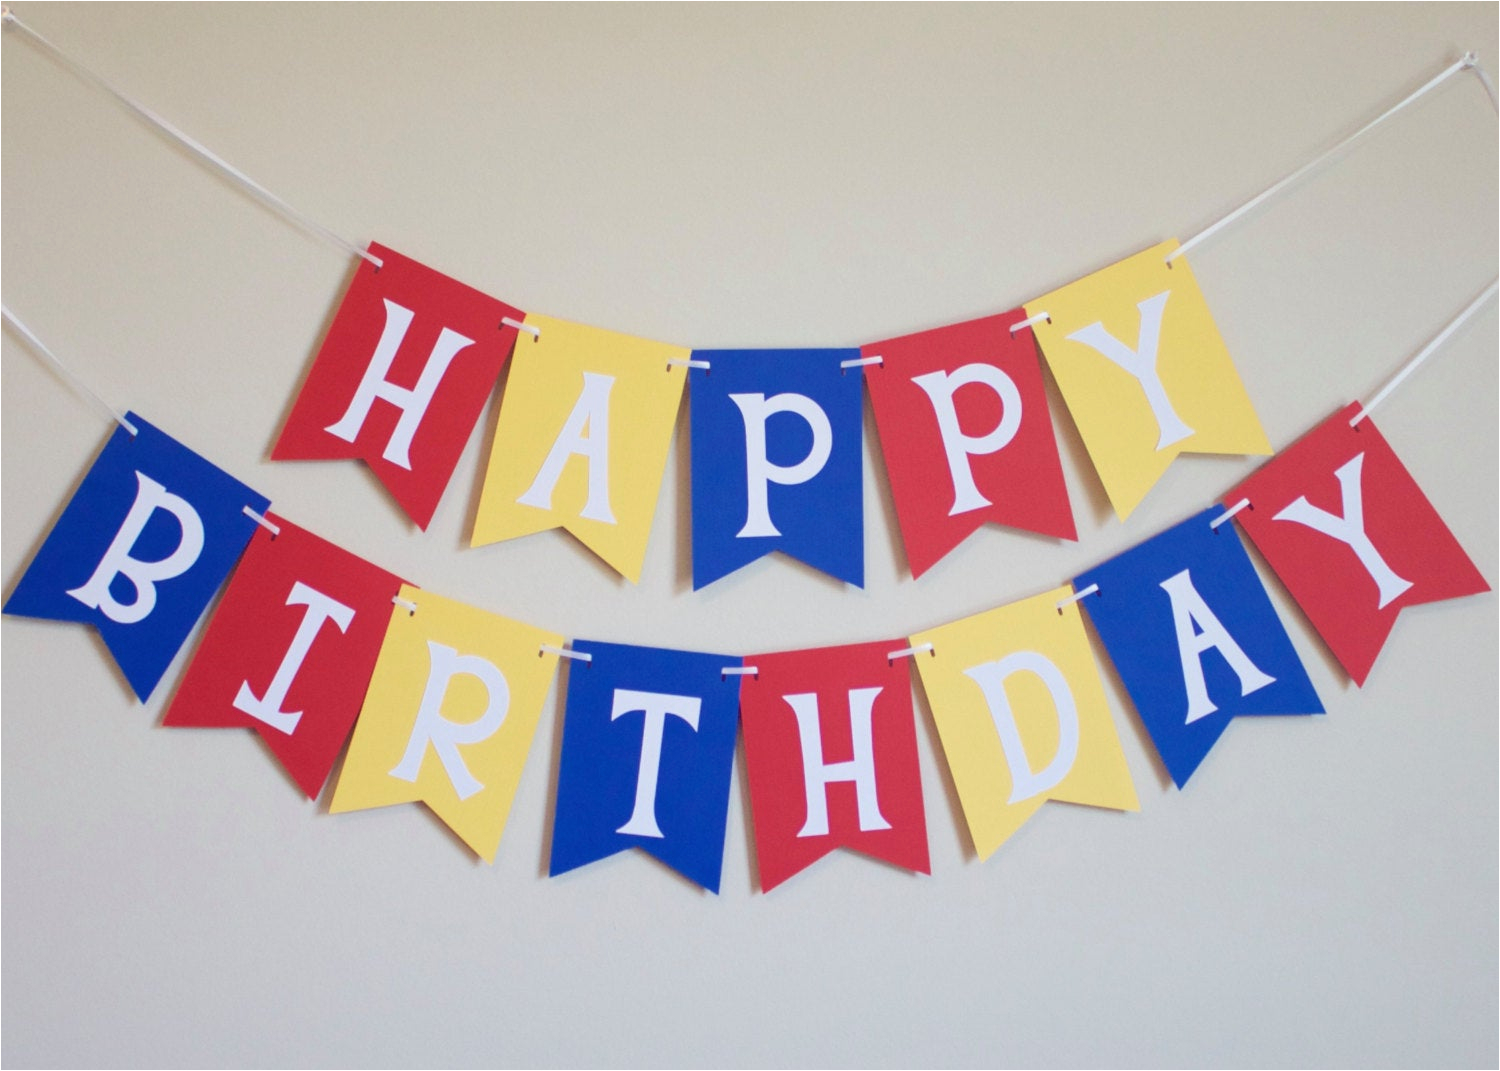 happy birthday banner in red yellow and